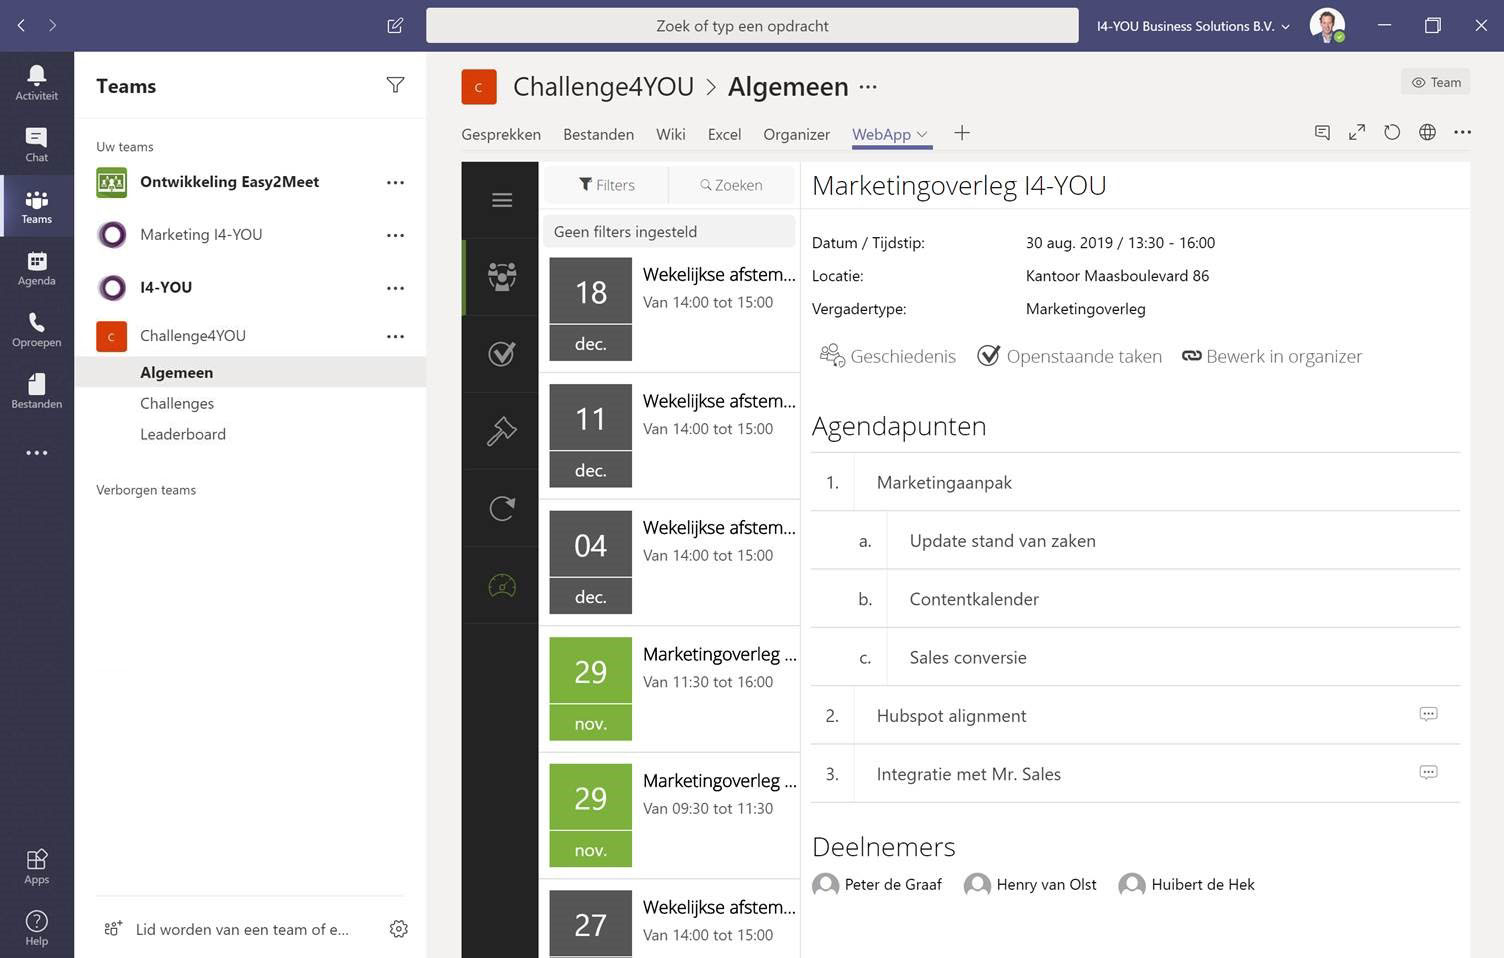 Microsoft Teams Easy2Meet Agenda